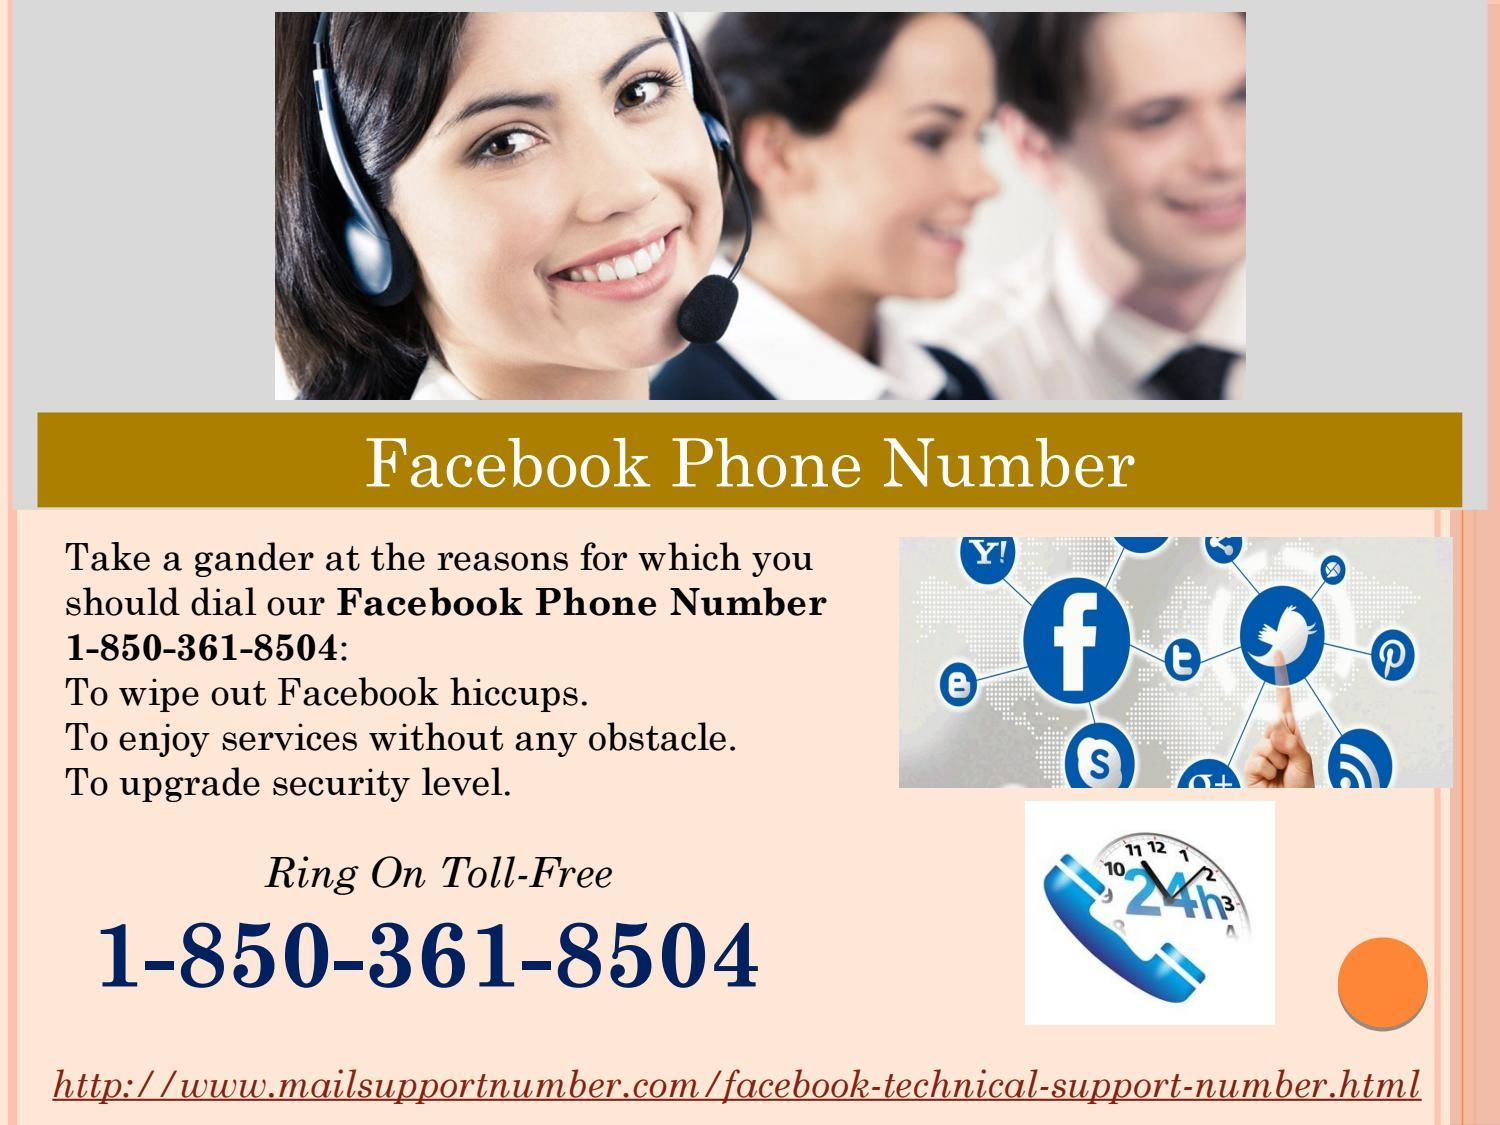 Dial Facebook Phone Number for enable 2 step verification factor 1-850-361-8504? Do you want to enable 2 step verification factors to secure your Facebook account? Don't you have any idea to do so? If yes, make a phone call on our toll-free Facebook Phone Number 1-850-361-8504 and stay united with us. We shall help you out for the same purpose in an effective manner and you will be able to secure more your Facebook account. For more information…